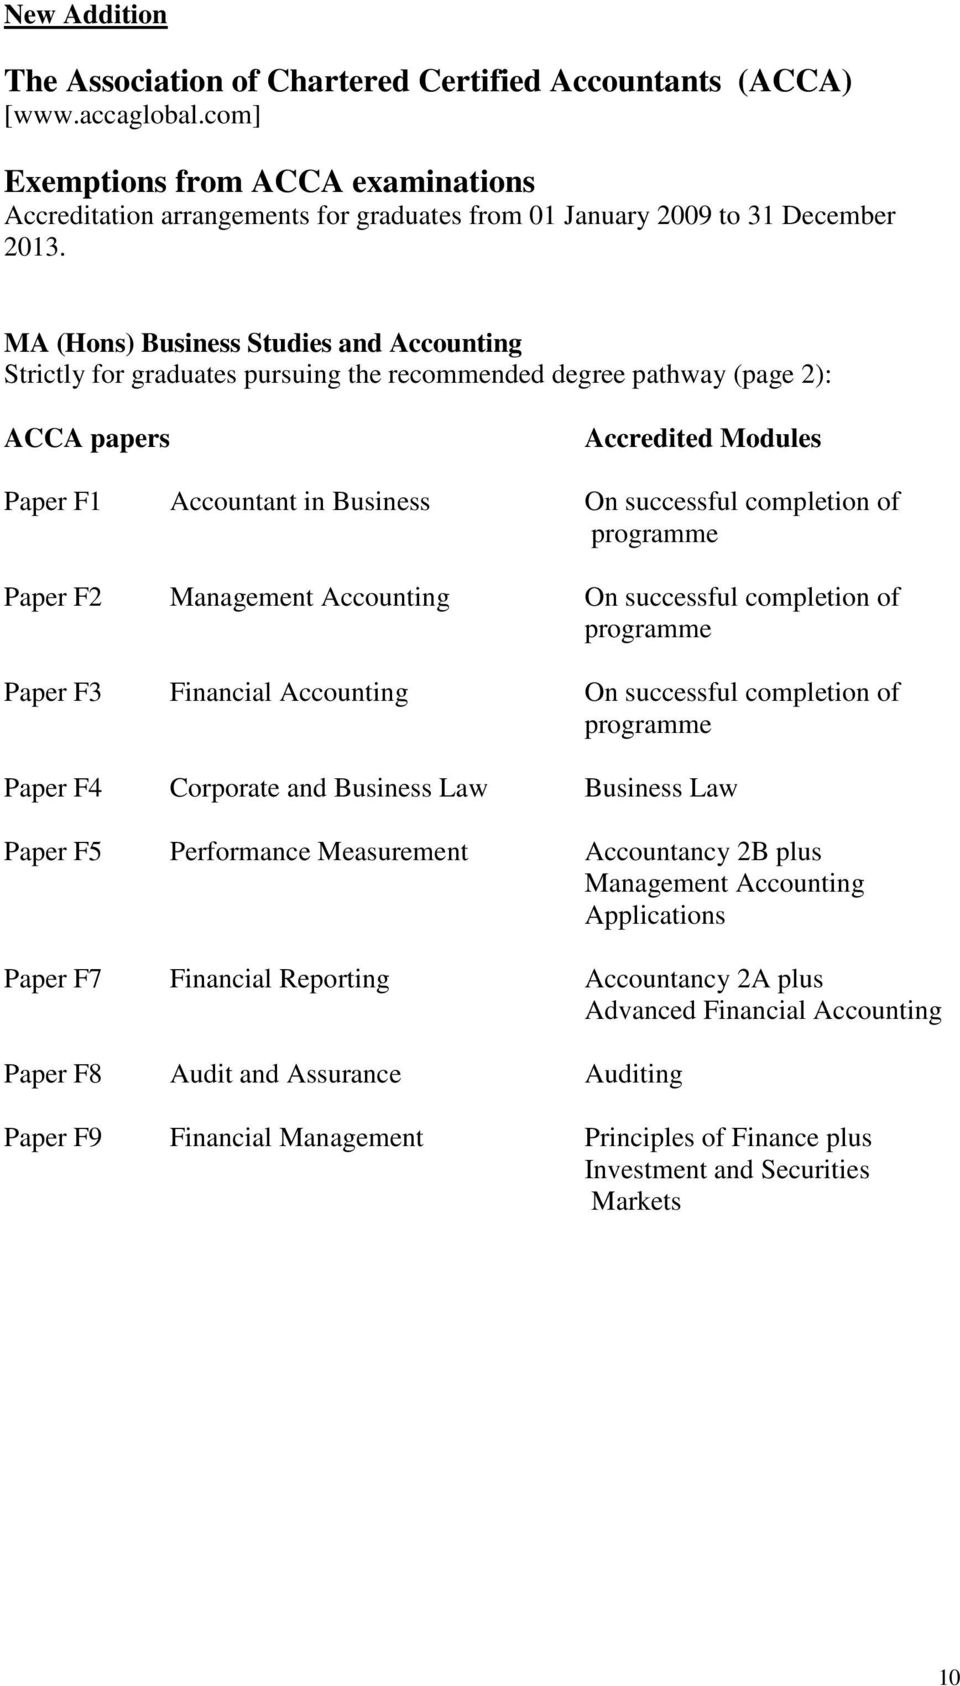 MA (Hons) Business Studies and Accounting Strictly for graduates pursuing the recommended degree pathway (page 2): ACCA papers Accredited Modules Paper F1 Accountant in Business On successful